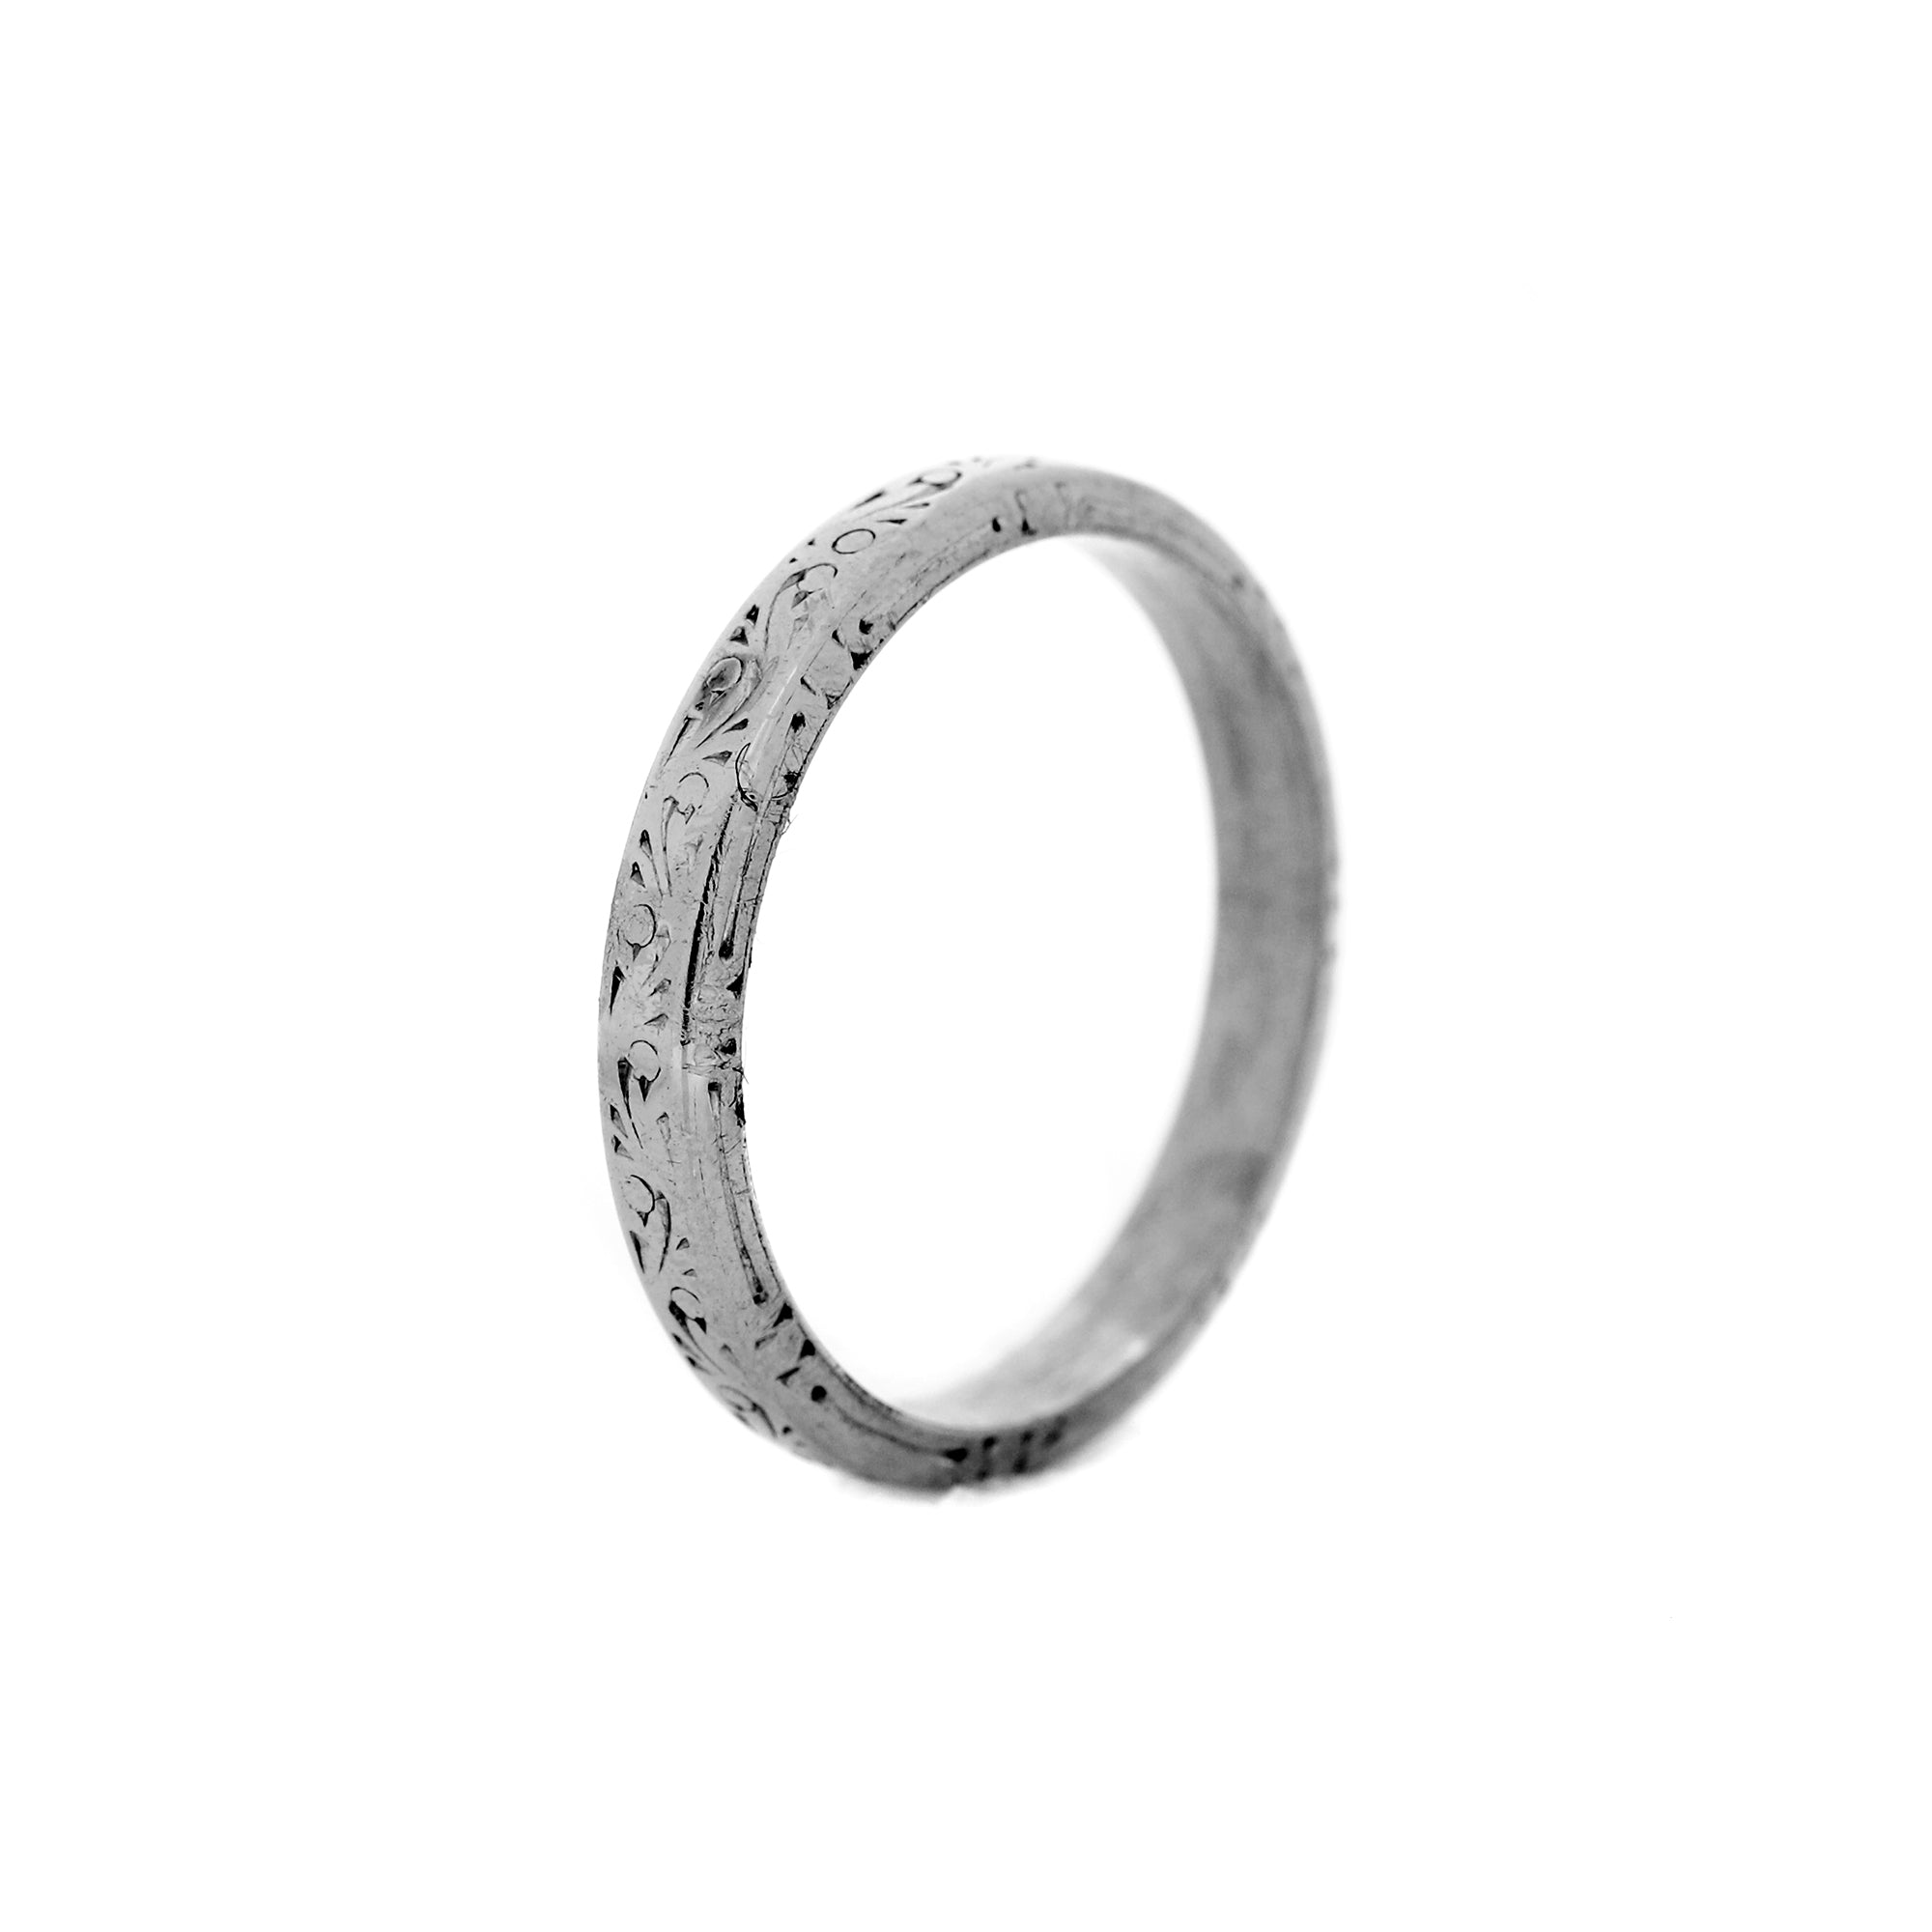 Vintage Platinum Wedding Band